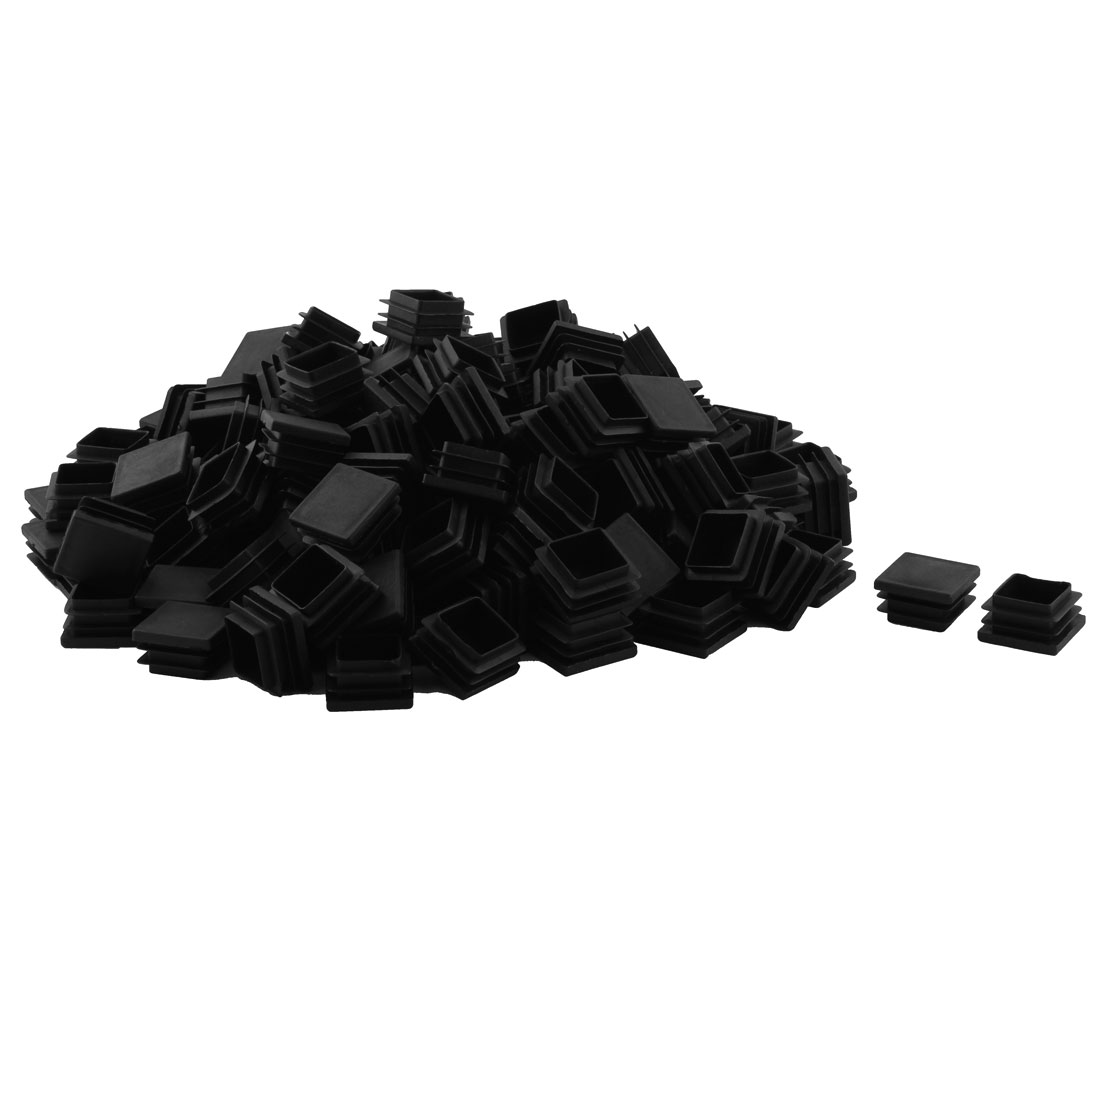 Plastic Square Design Tube Insert End Blanking Cover Cap Black 32 x 32mm 150pcs